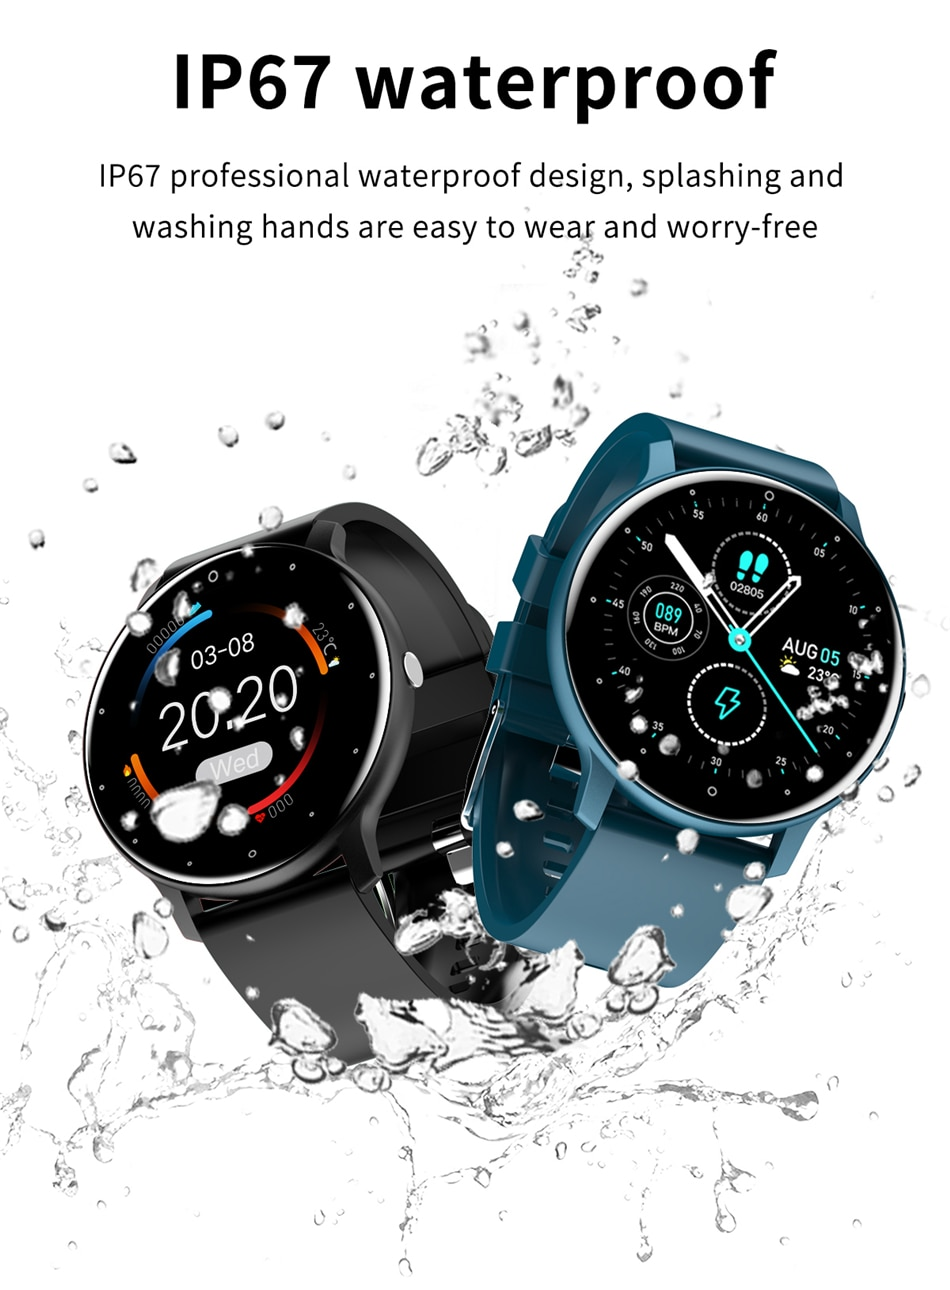 H93d6d934b0da4ae7abeac84ea5c9d104f - LIGE 2021 New Smart Watch Men Full Touch Screen Sport Fitness Watch IP67 Waterproof Bluetooth For Android ios smartwatch Men box